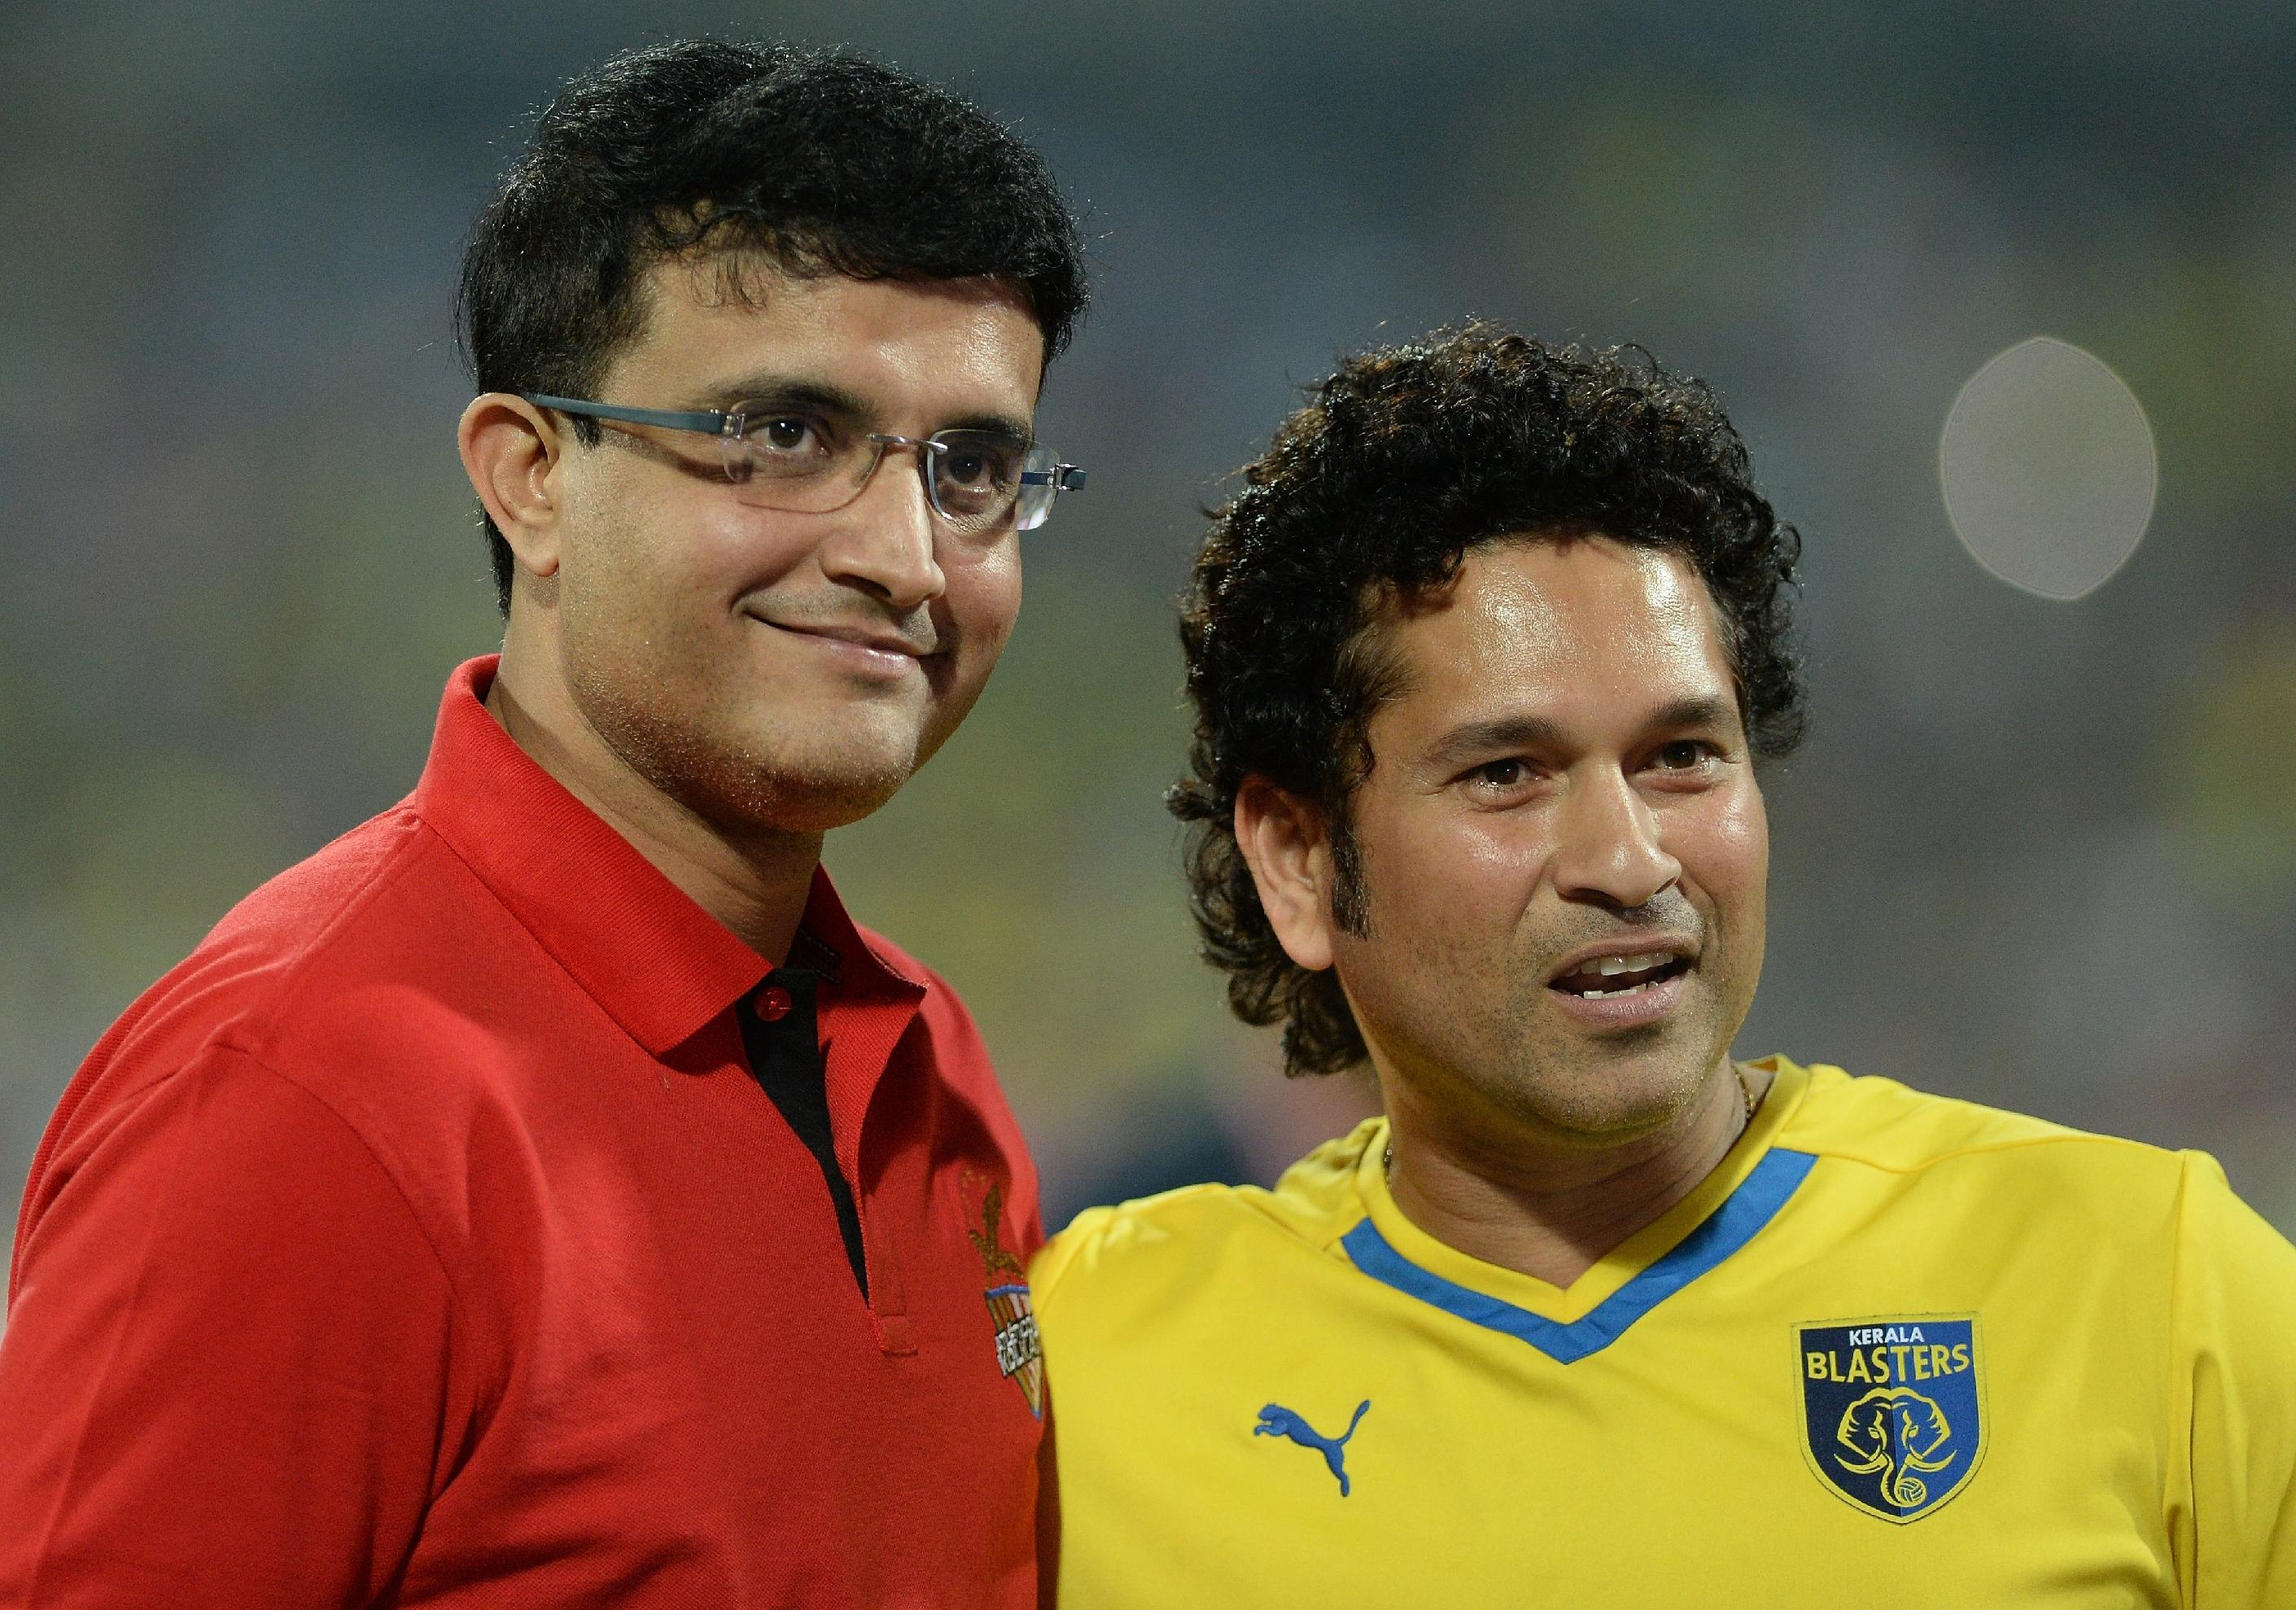 Ganguly's Atletico wins inaugural India soccer league